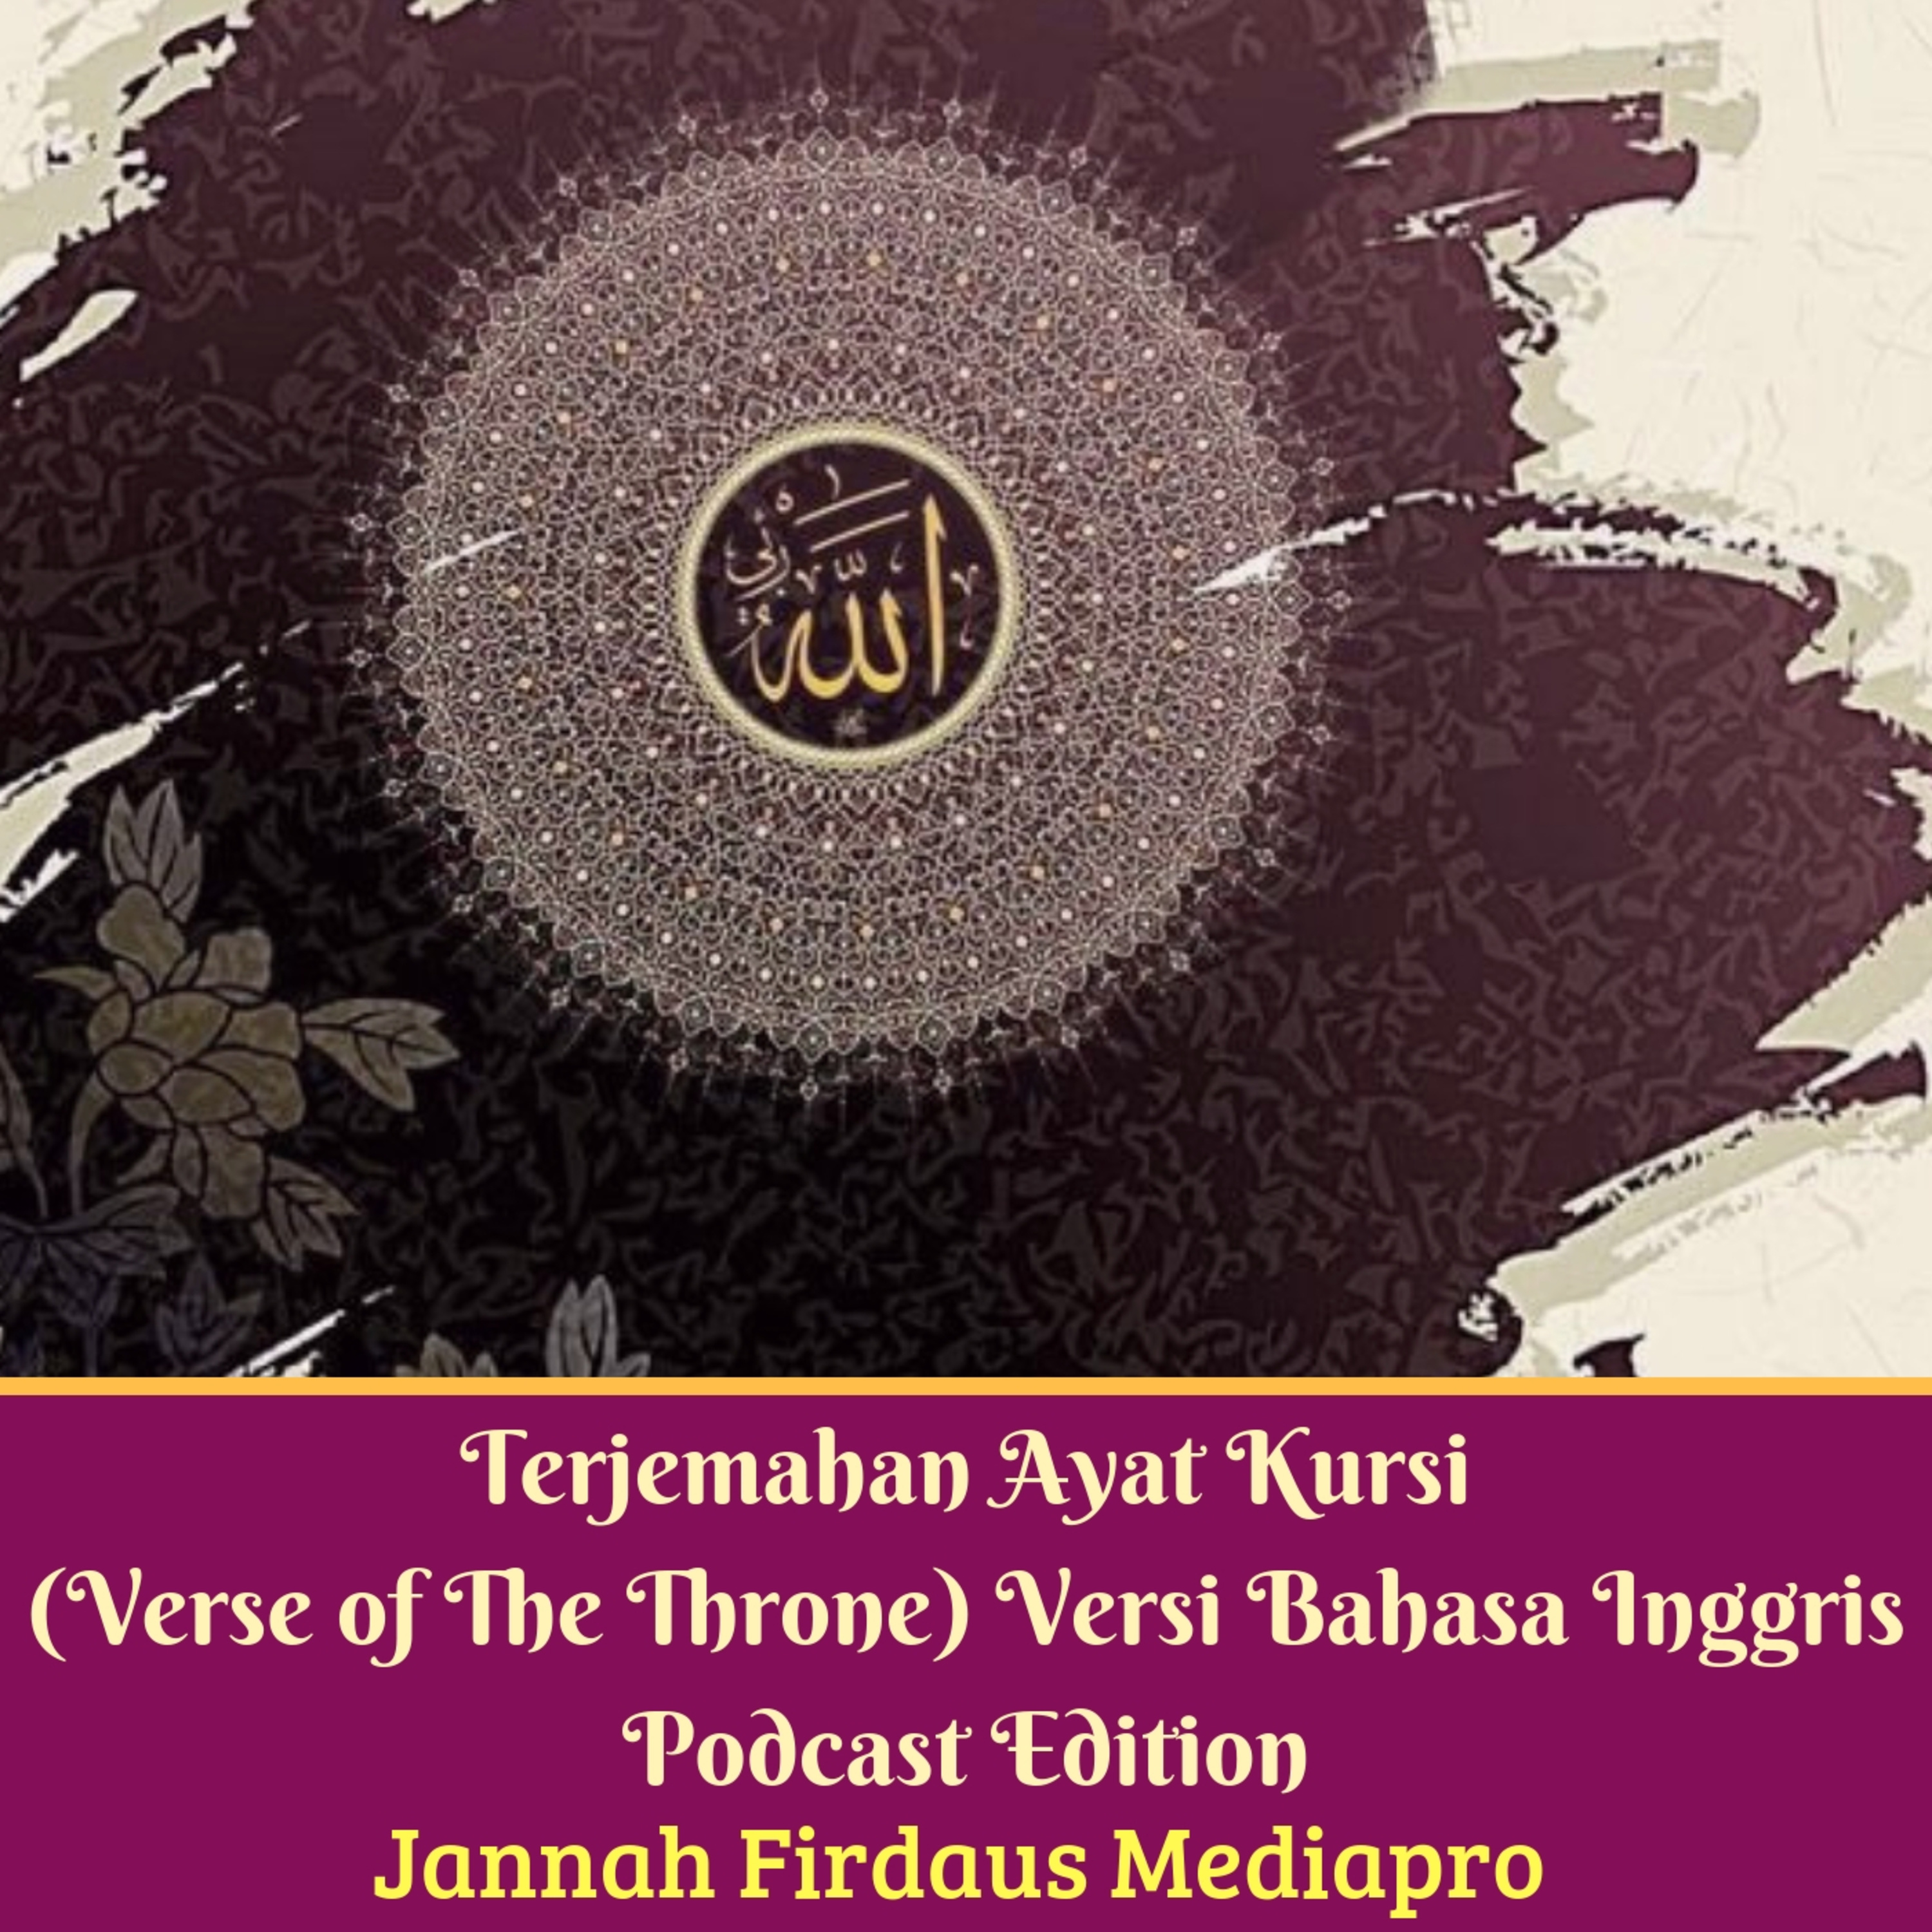 Jannah Firdaus Mediapro Podcast Podcast Podtail